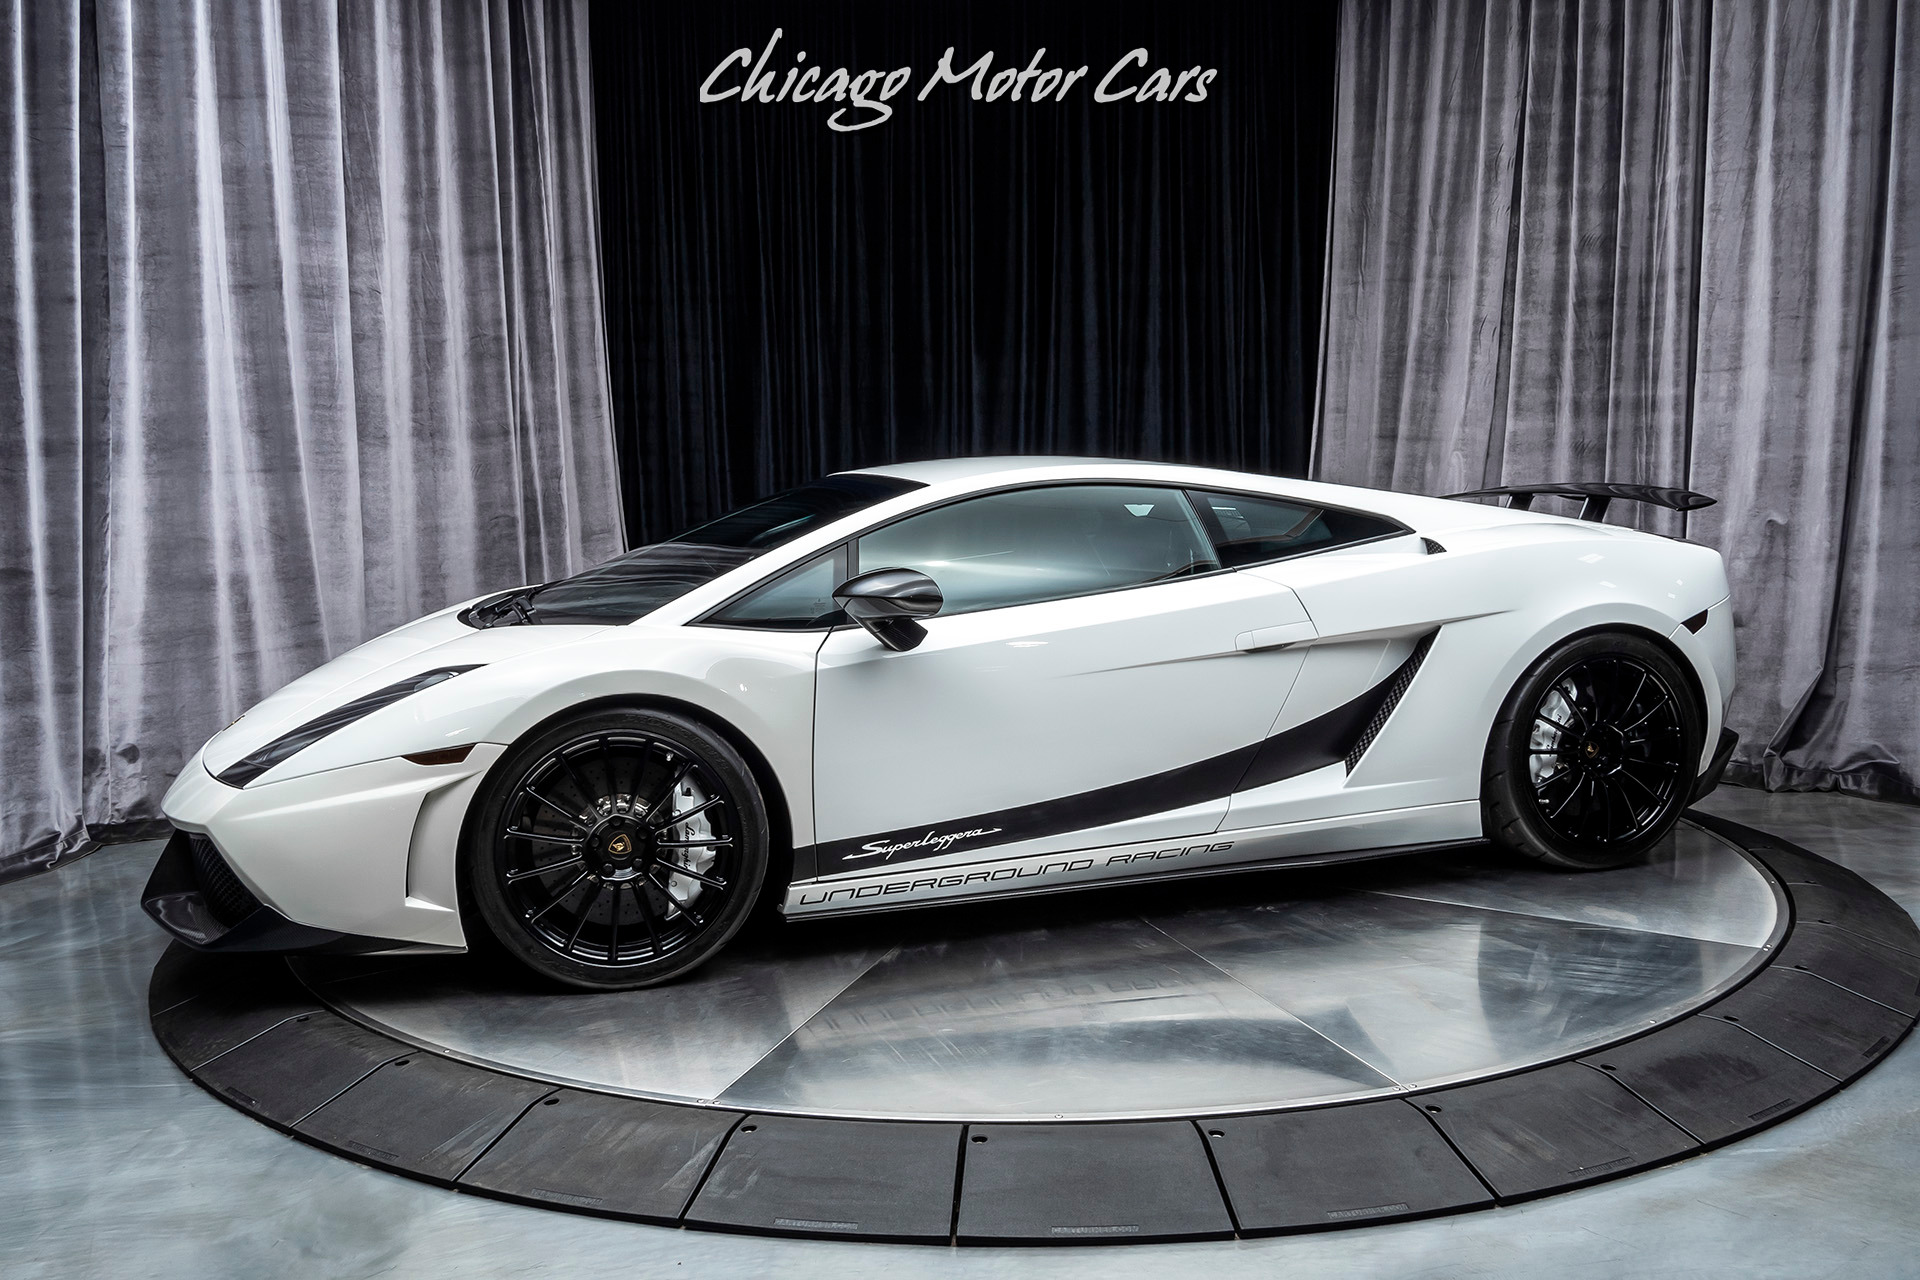 Used-2008-Lamborghini-Gallardo-Superleggera-Underground-Racing-X2-Twin-Turbo---2200-WHEEL-HORSEPOWER